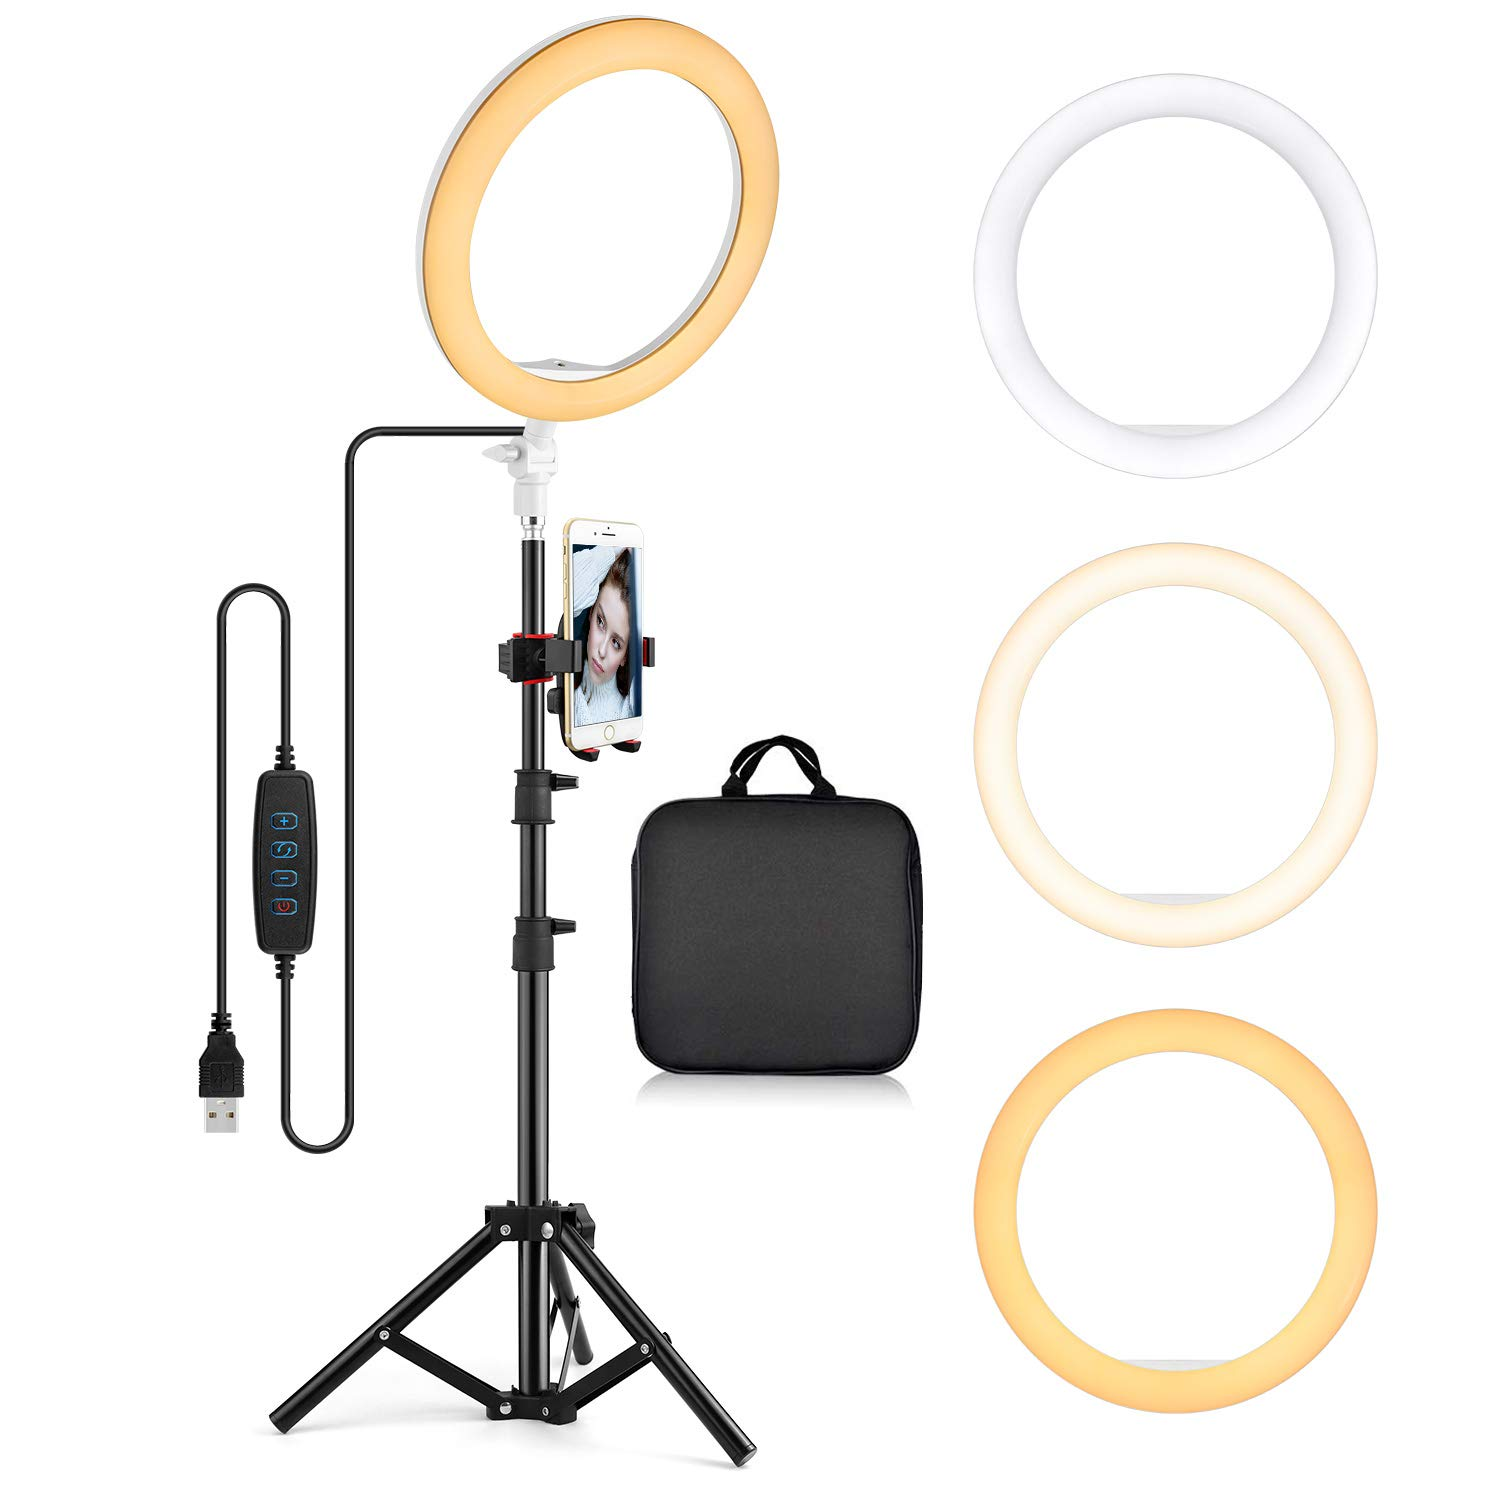 10.2'' Ring Light Desk Tripod Stand with Phone Holder LED Selfie Ringlight Kits Dimmable Desktop Lamp Circle Lights for Photography Makeup Video Laptop YouTube by Old Shark